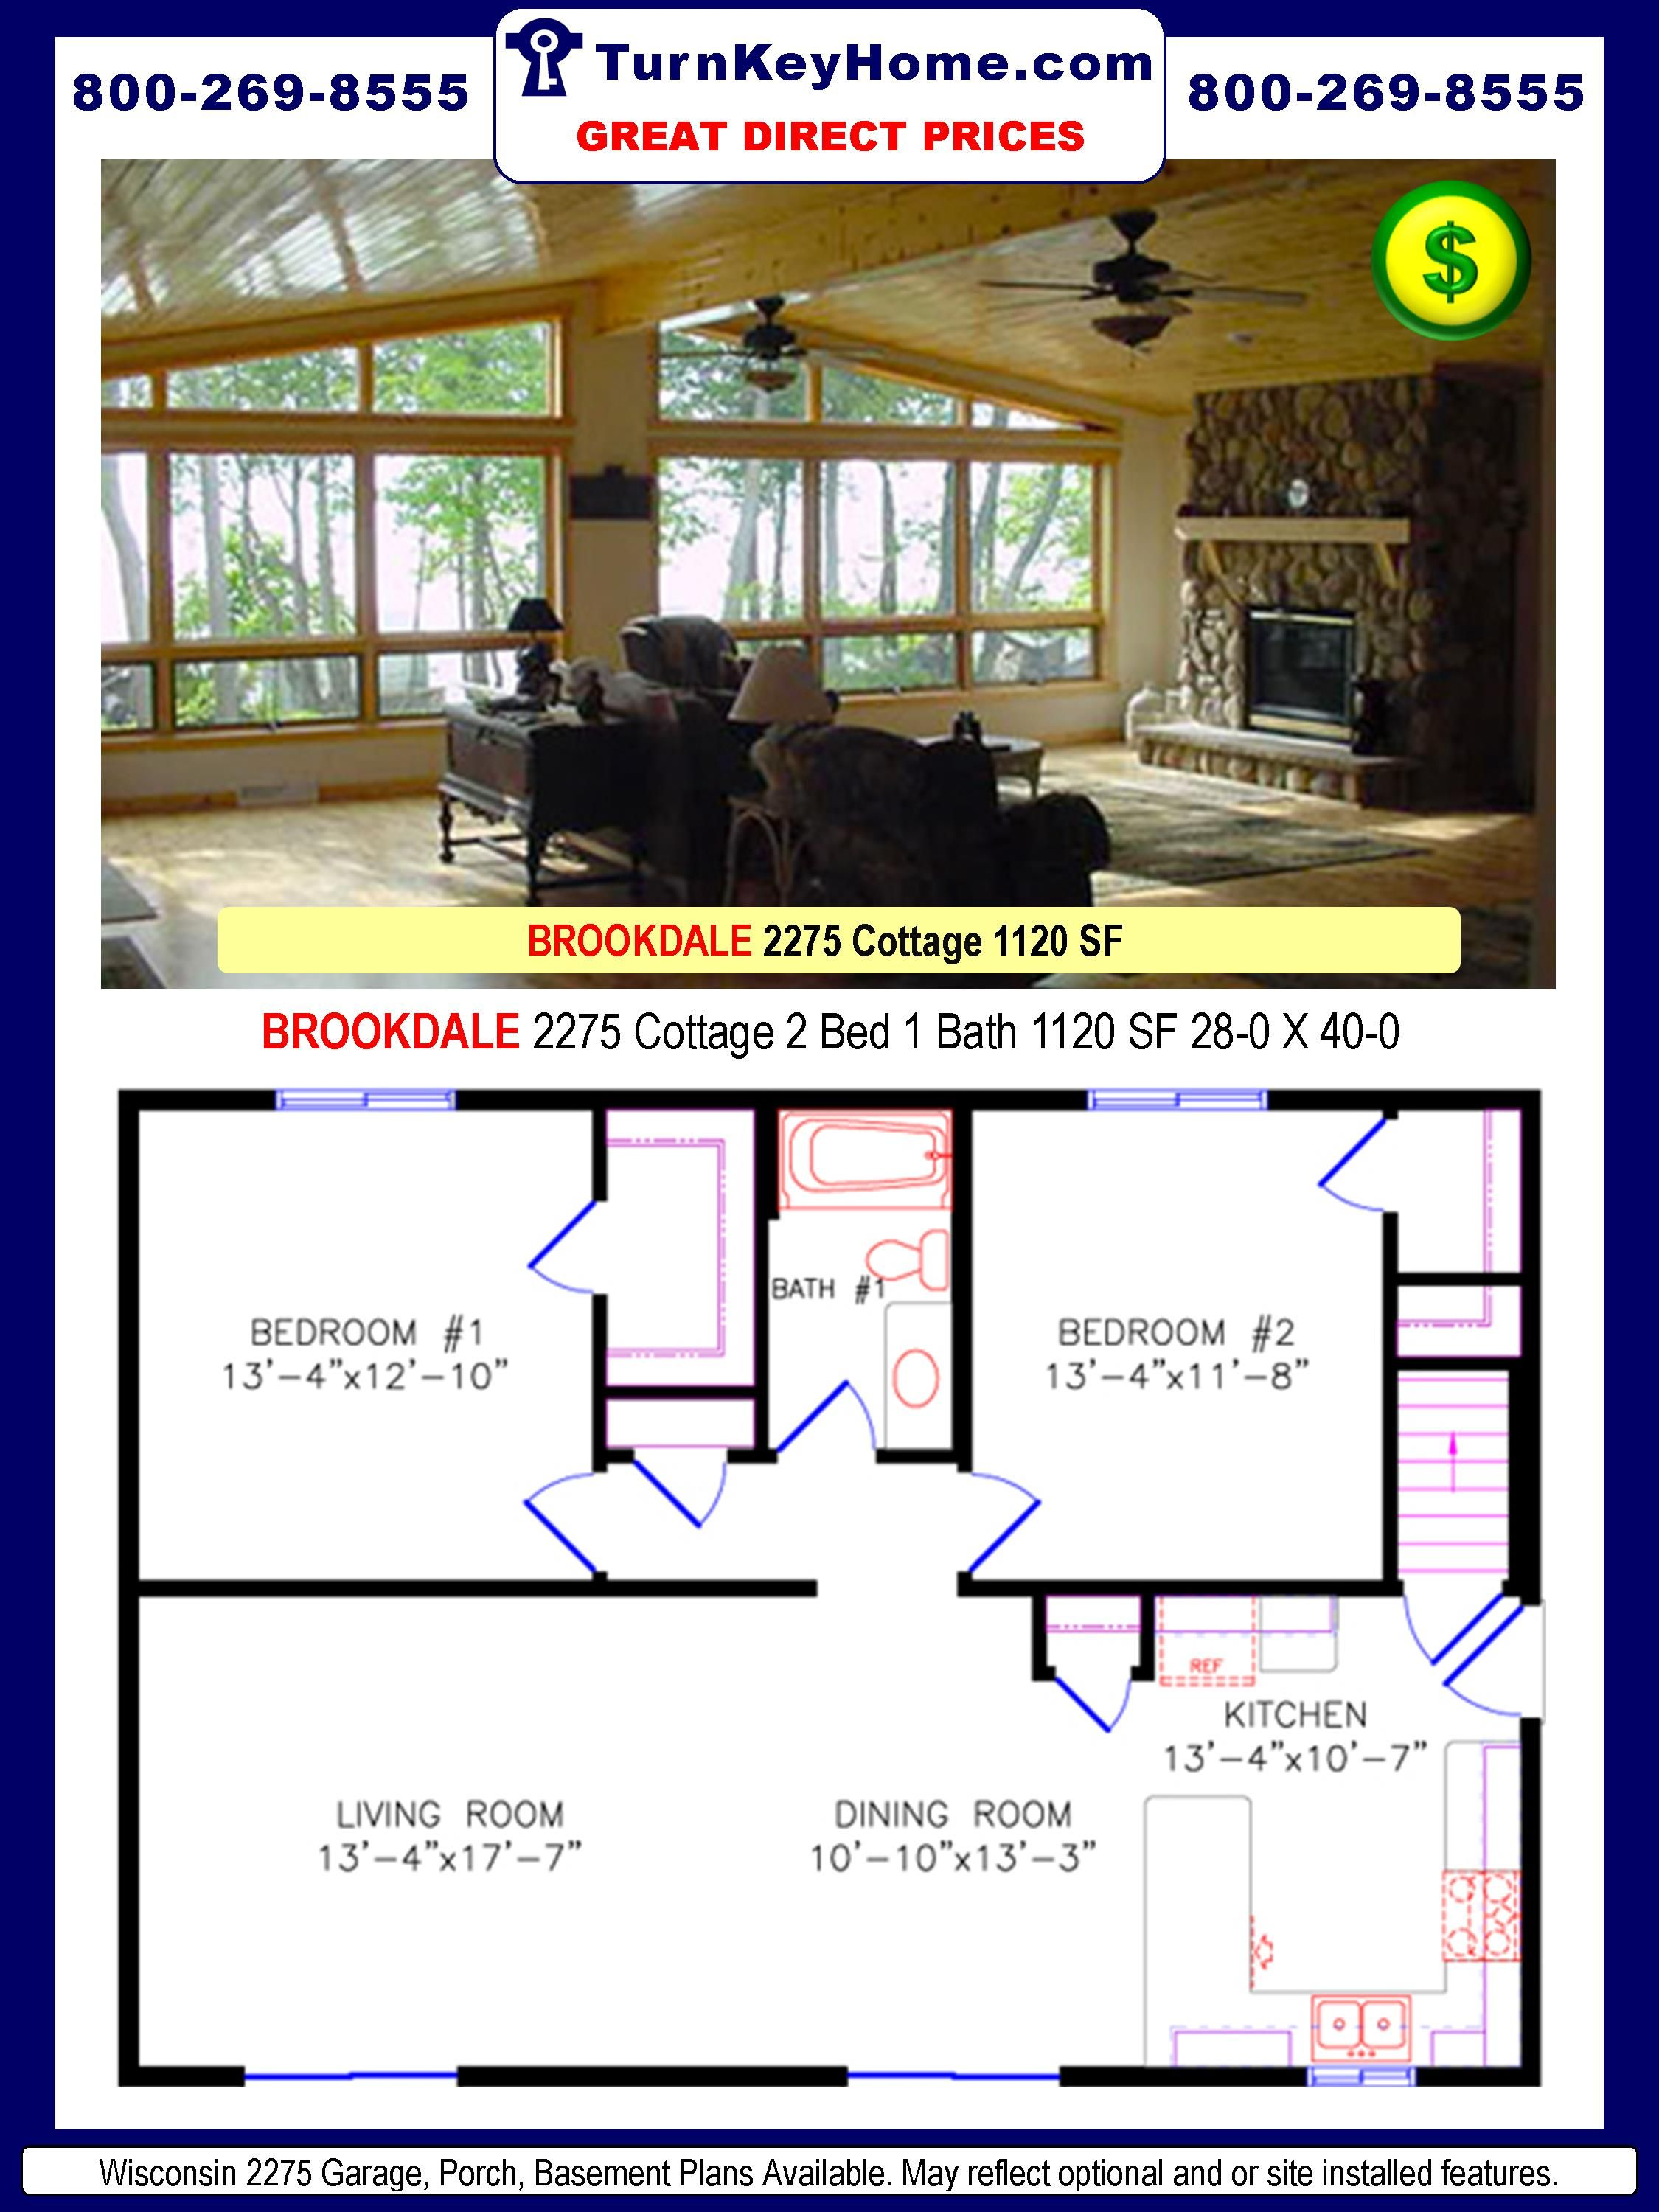 Price Of Manufactured Homes brookdale 2275: 2 bed: 1 bath: cottage plan: 1120 sf: wisconsin